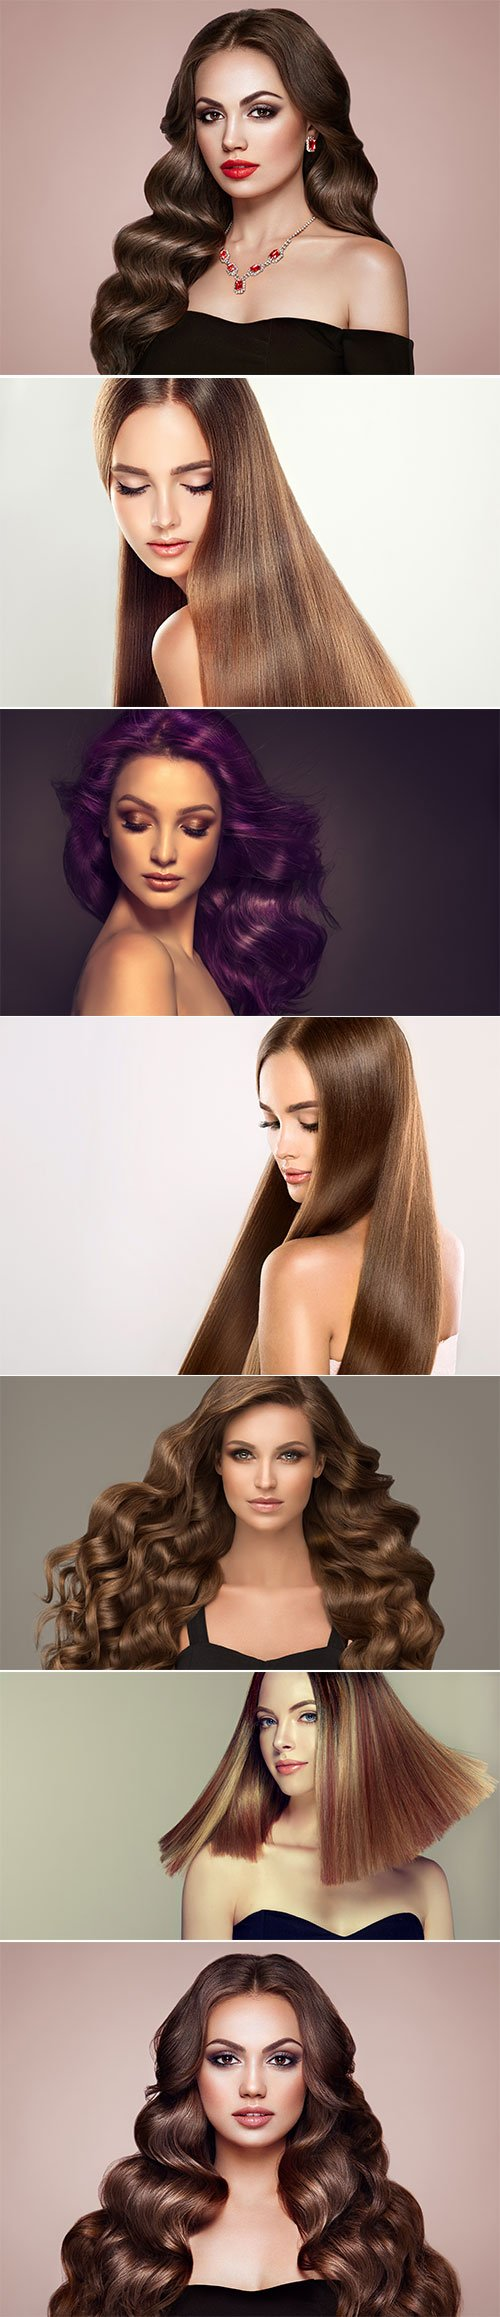 Luxury girls with beautiful hair and makeup